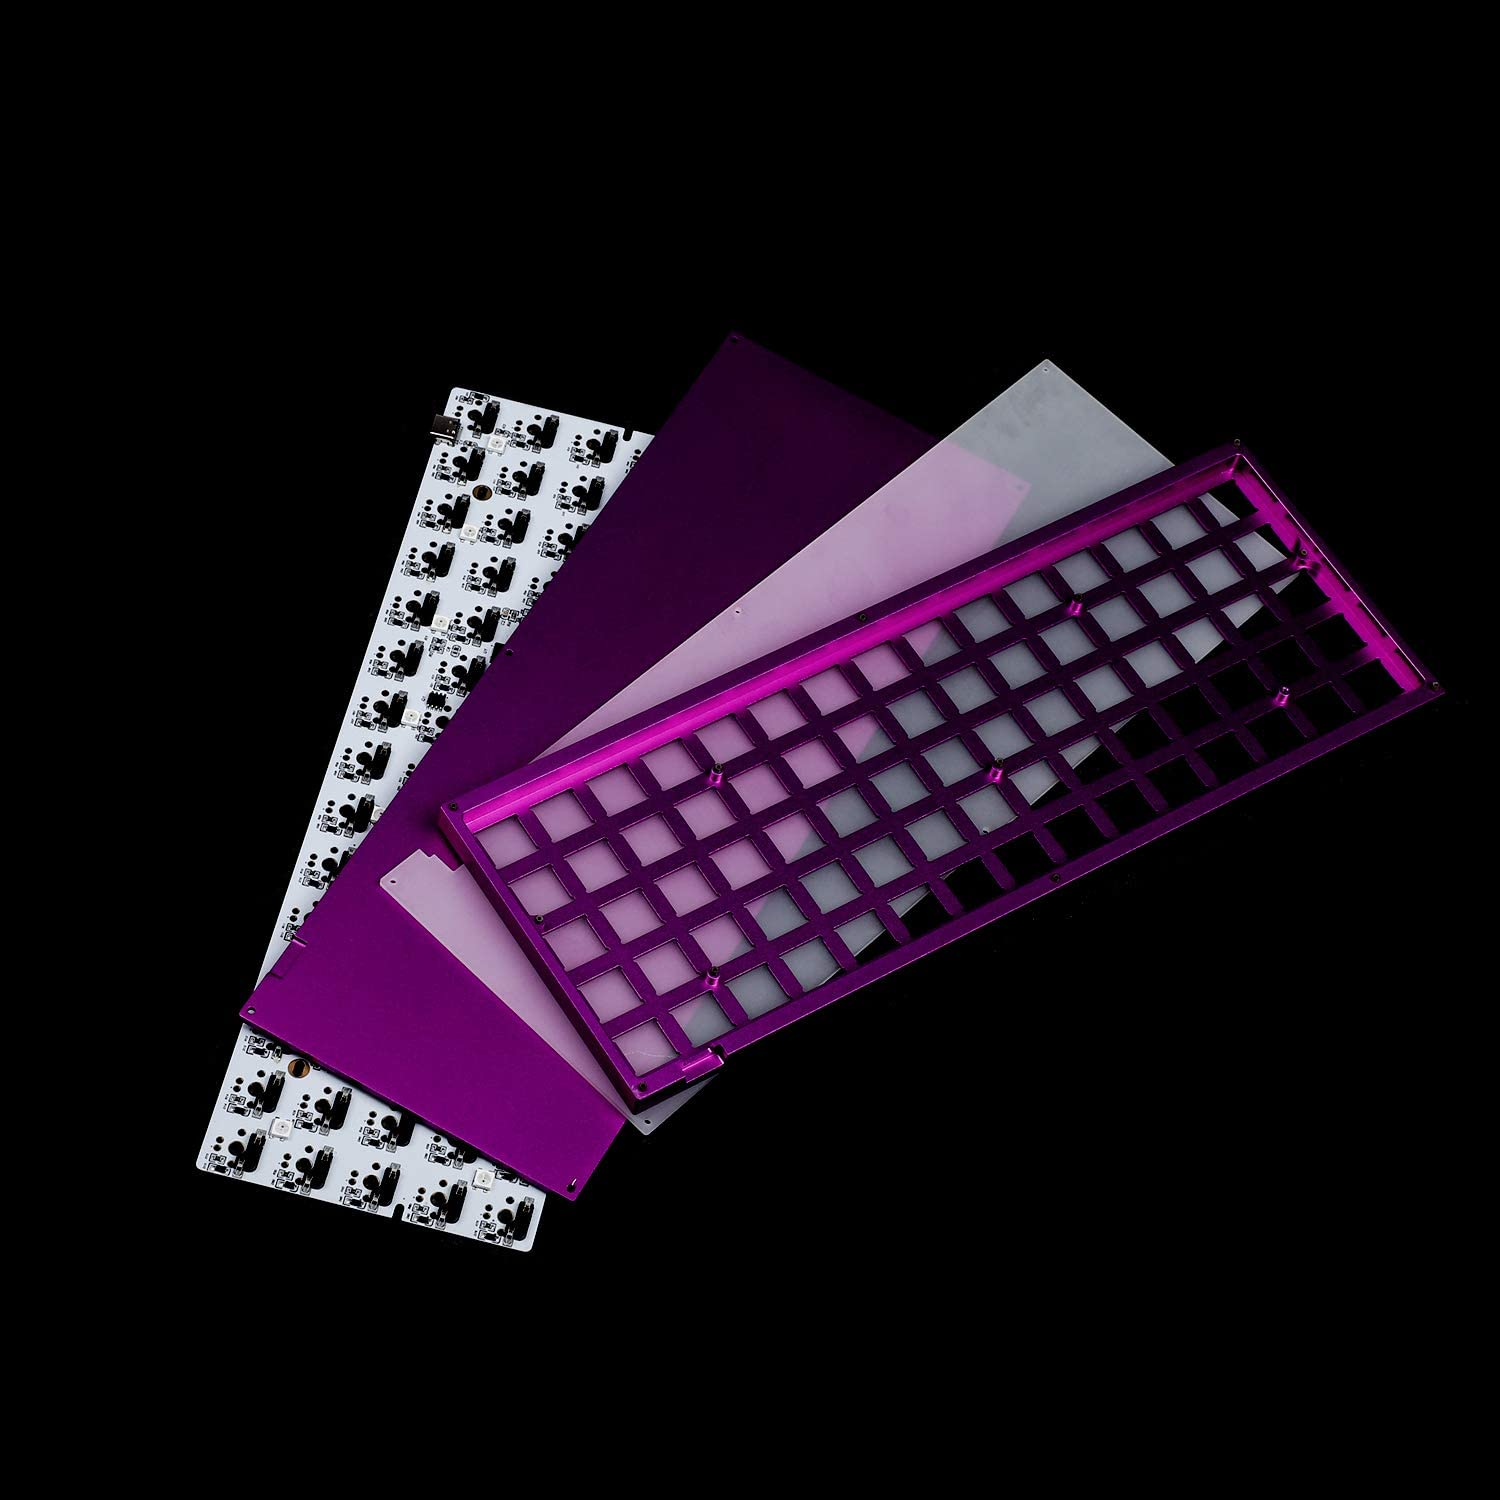 ID75 75 Keys Ortholinear Layout QMK Anodized Aluminum Case Plate hot-swappable Hot Swap Type C PCB Mechanical Keyboard Kit Silver